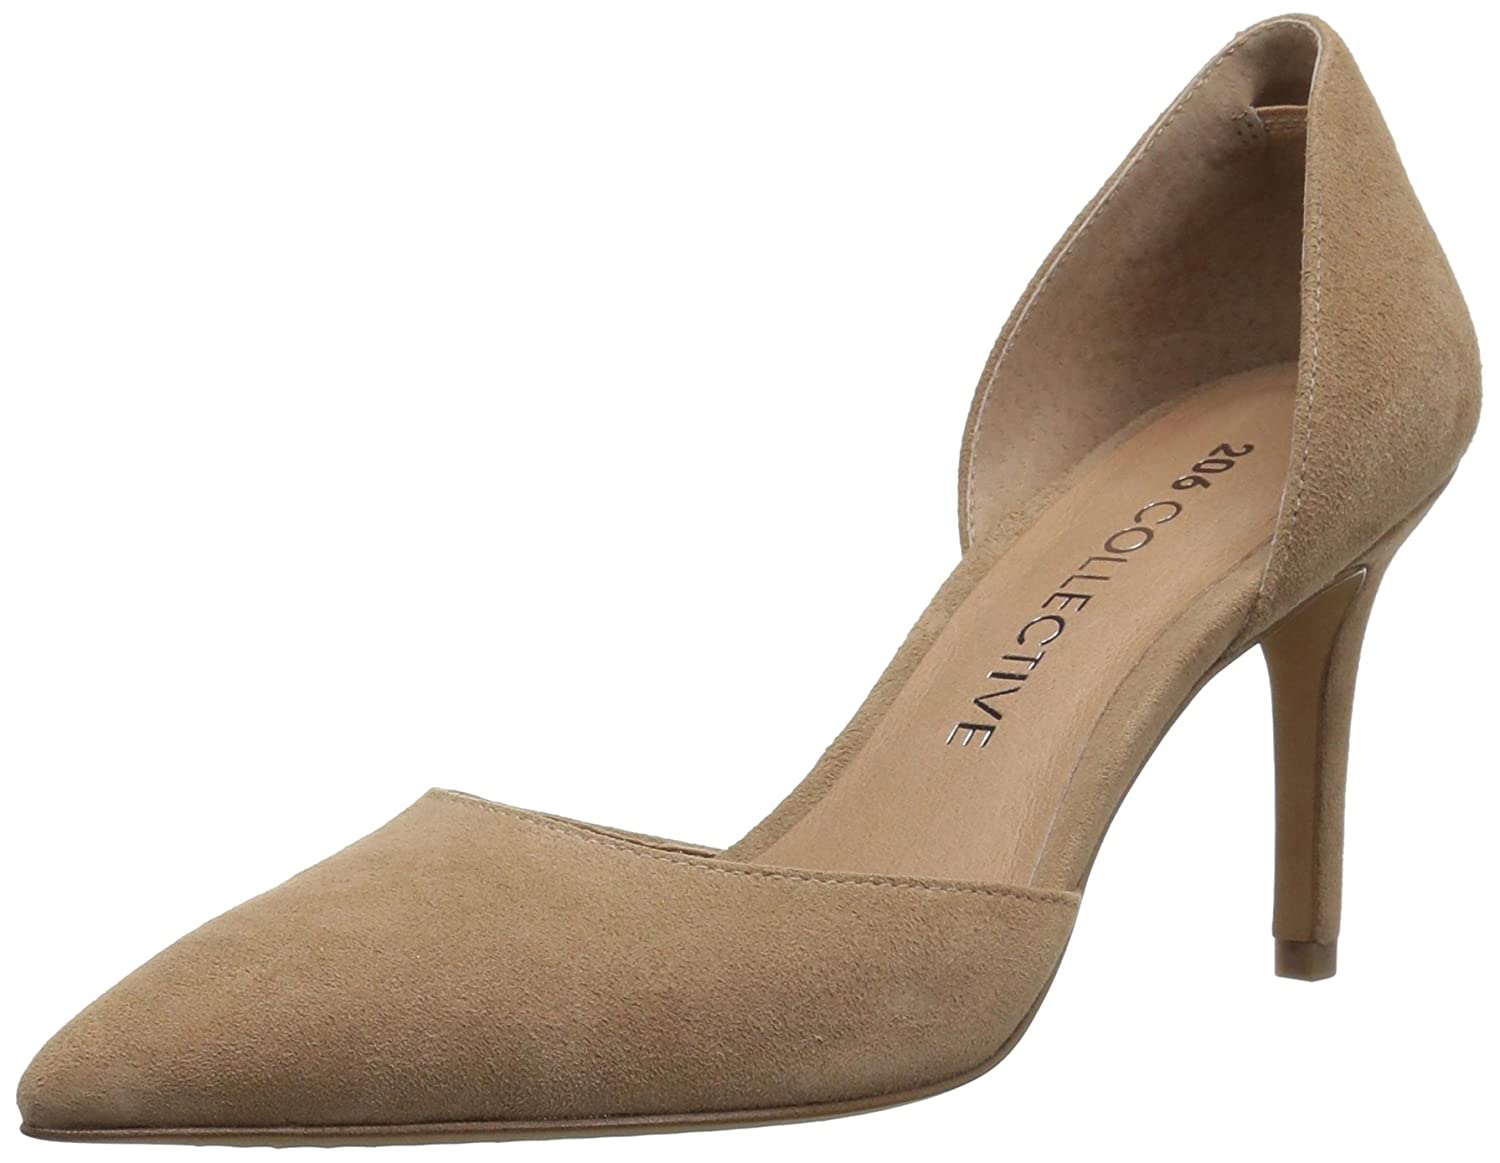 206 Collective Women's Adelaide D'Orsay Dress Pump B078B2HFY2 12 B(M) US|Caramel Suede